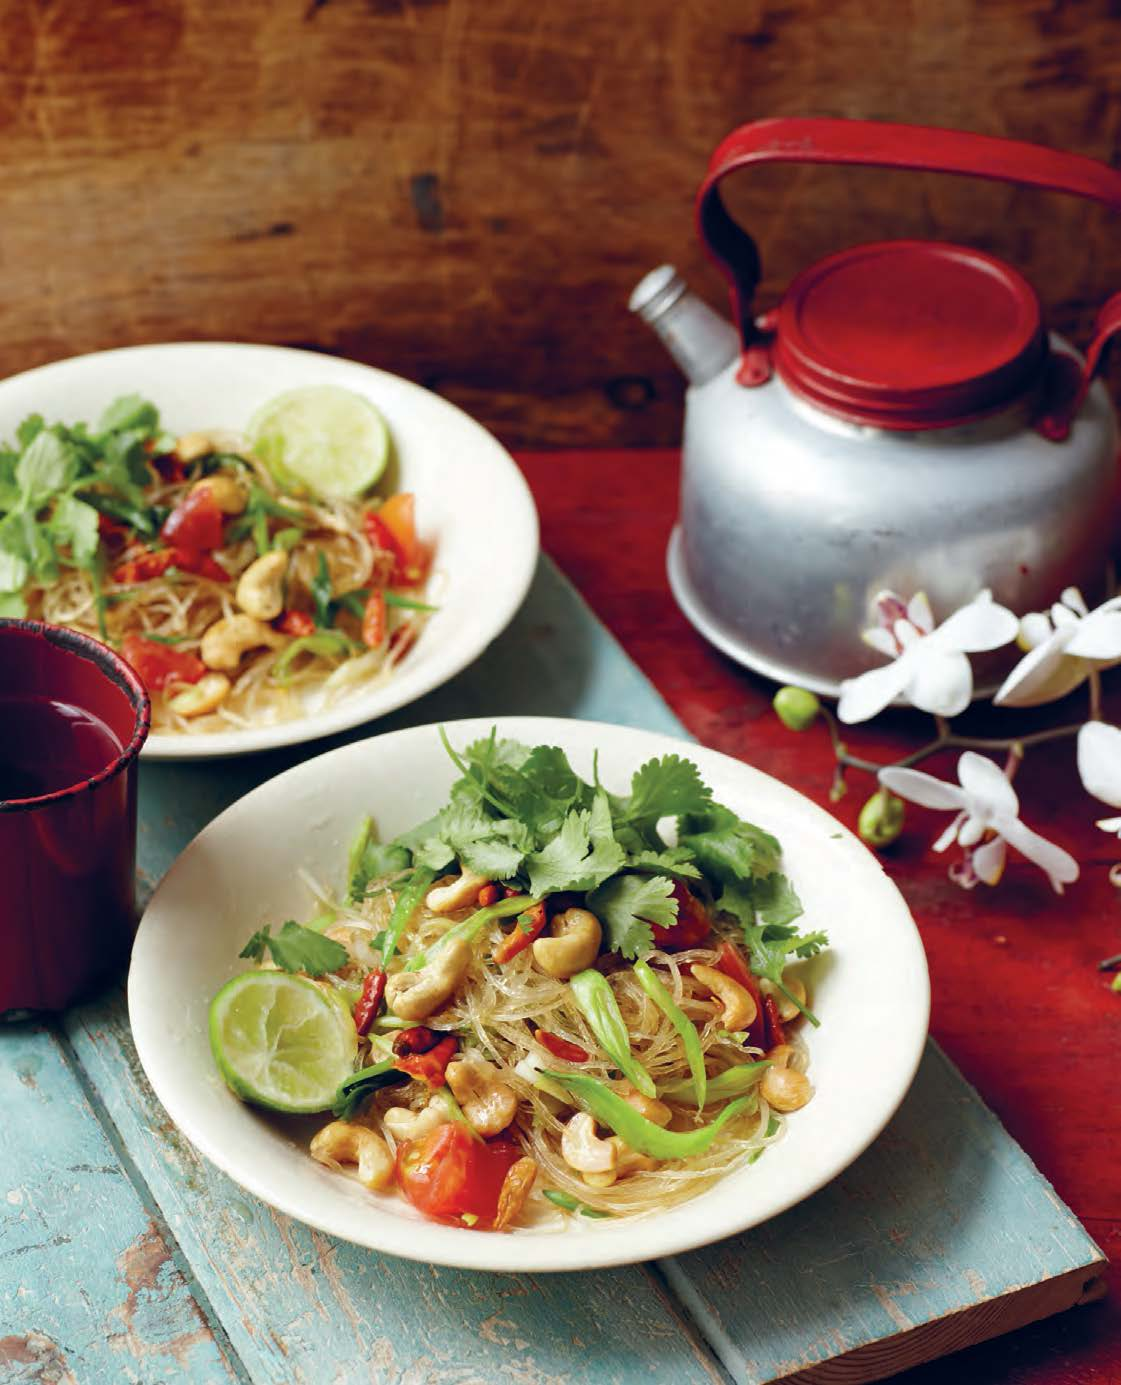 Our october recipe of the month books etc blog this wonderful recipe comes from vegan street food by jackie kearney published by ryland peters and small for a chance to win a copy of this amazing forumfinder Image collections